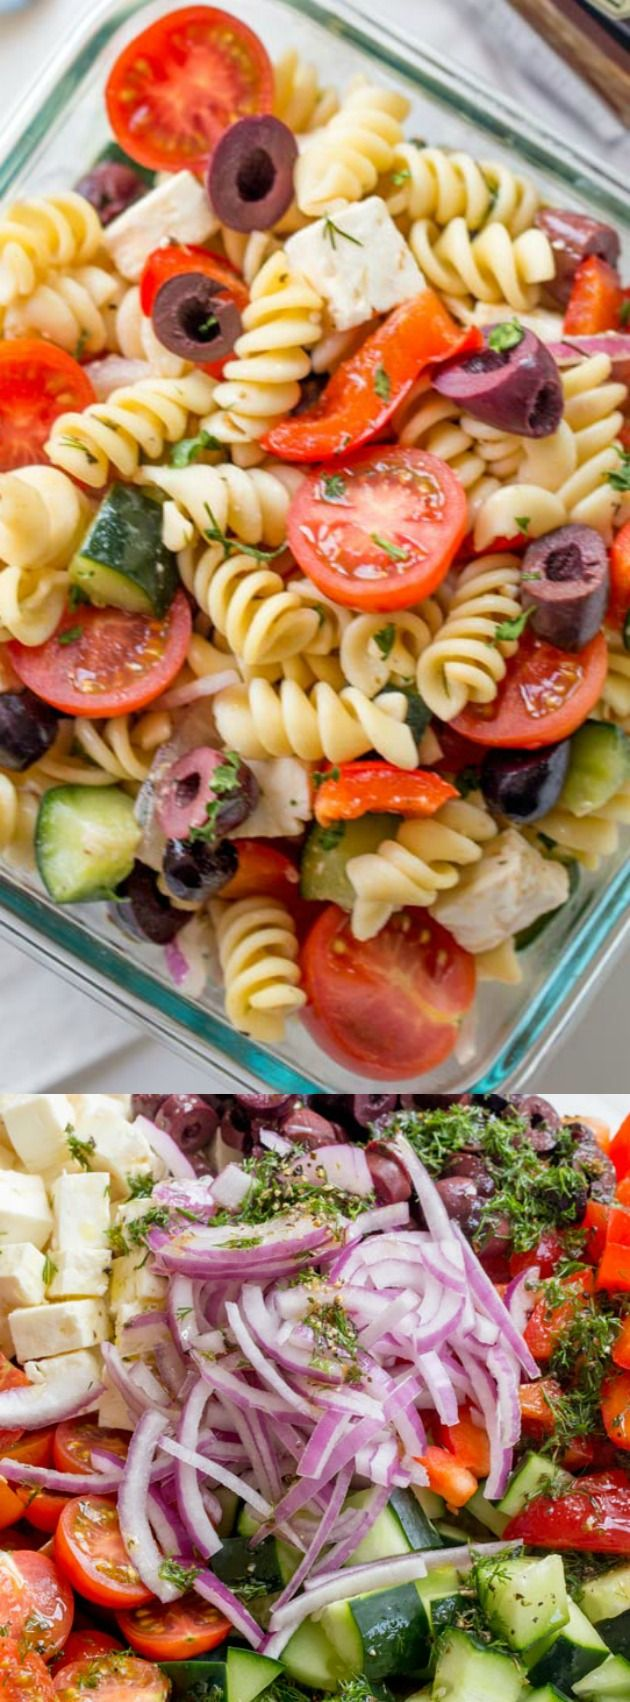 This Easy Greek Pasta Salad from Dinner, Then Dessert is the perfect easy lunch for home or work! It is loaded with pasta, feta, olives, and a tasty homemade vinaigrette!